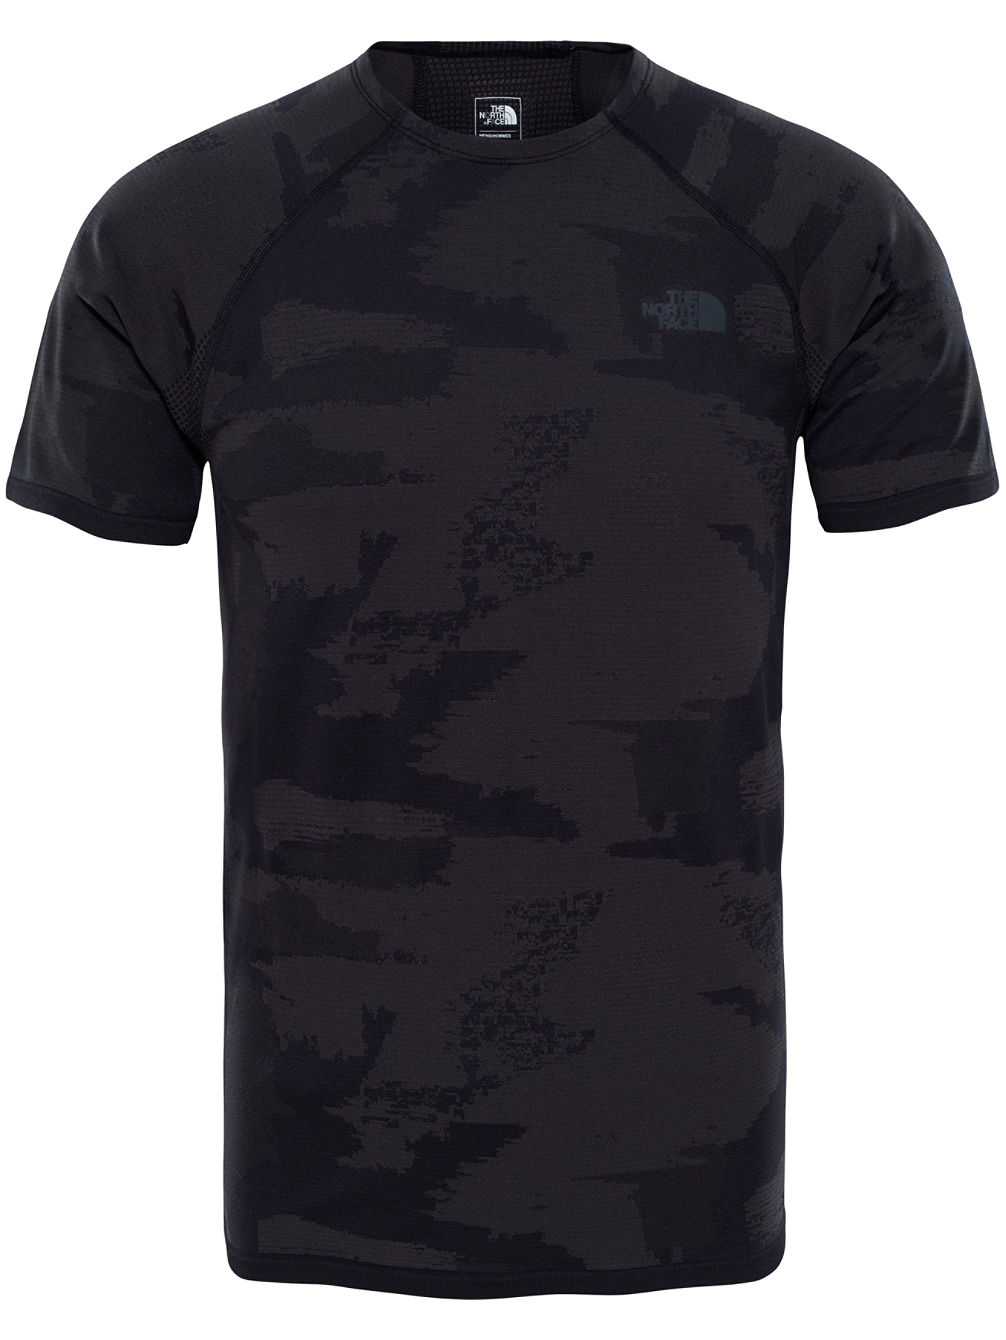 Kilowatt Seamless Tech Tee